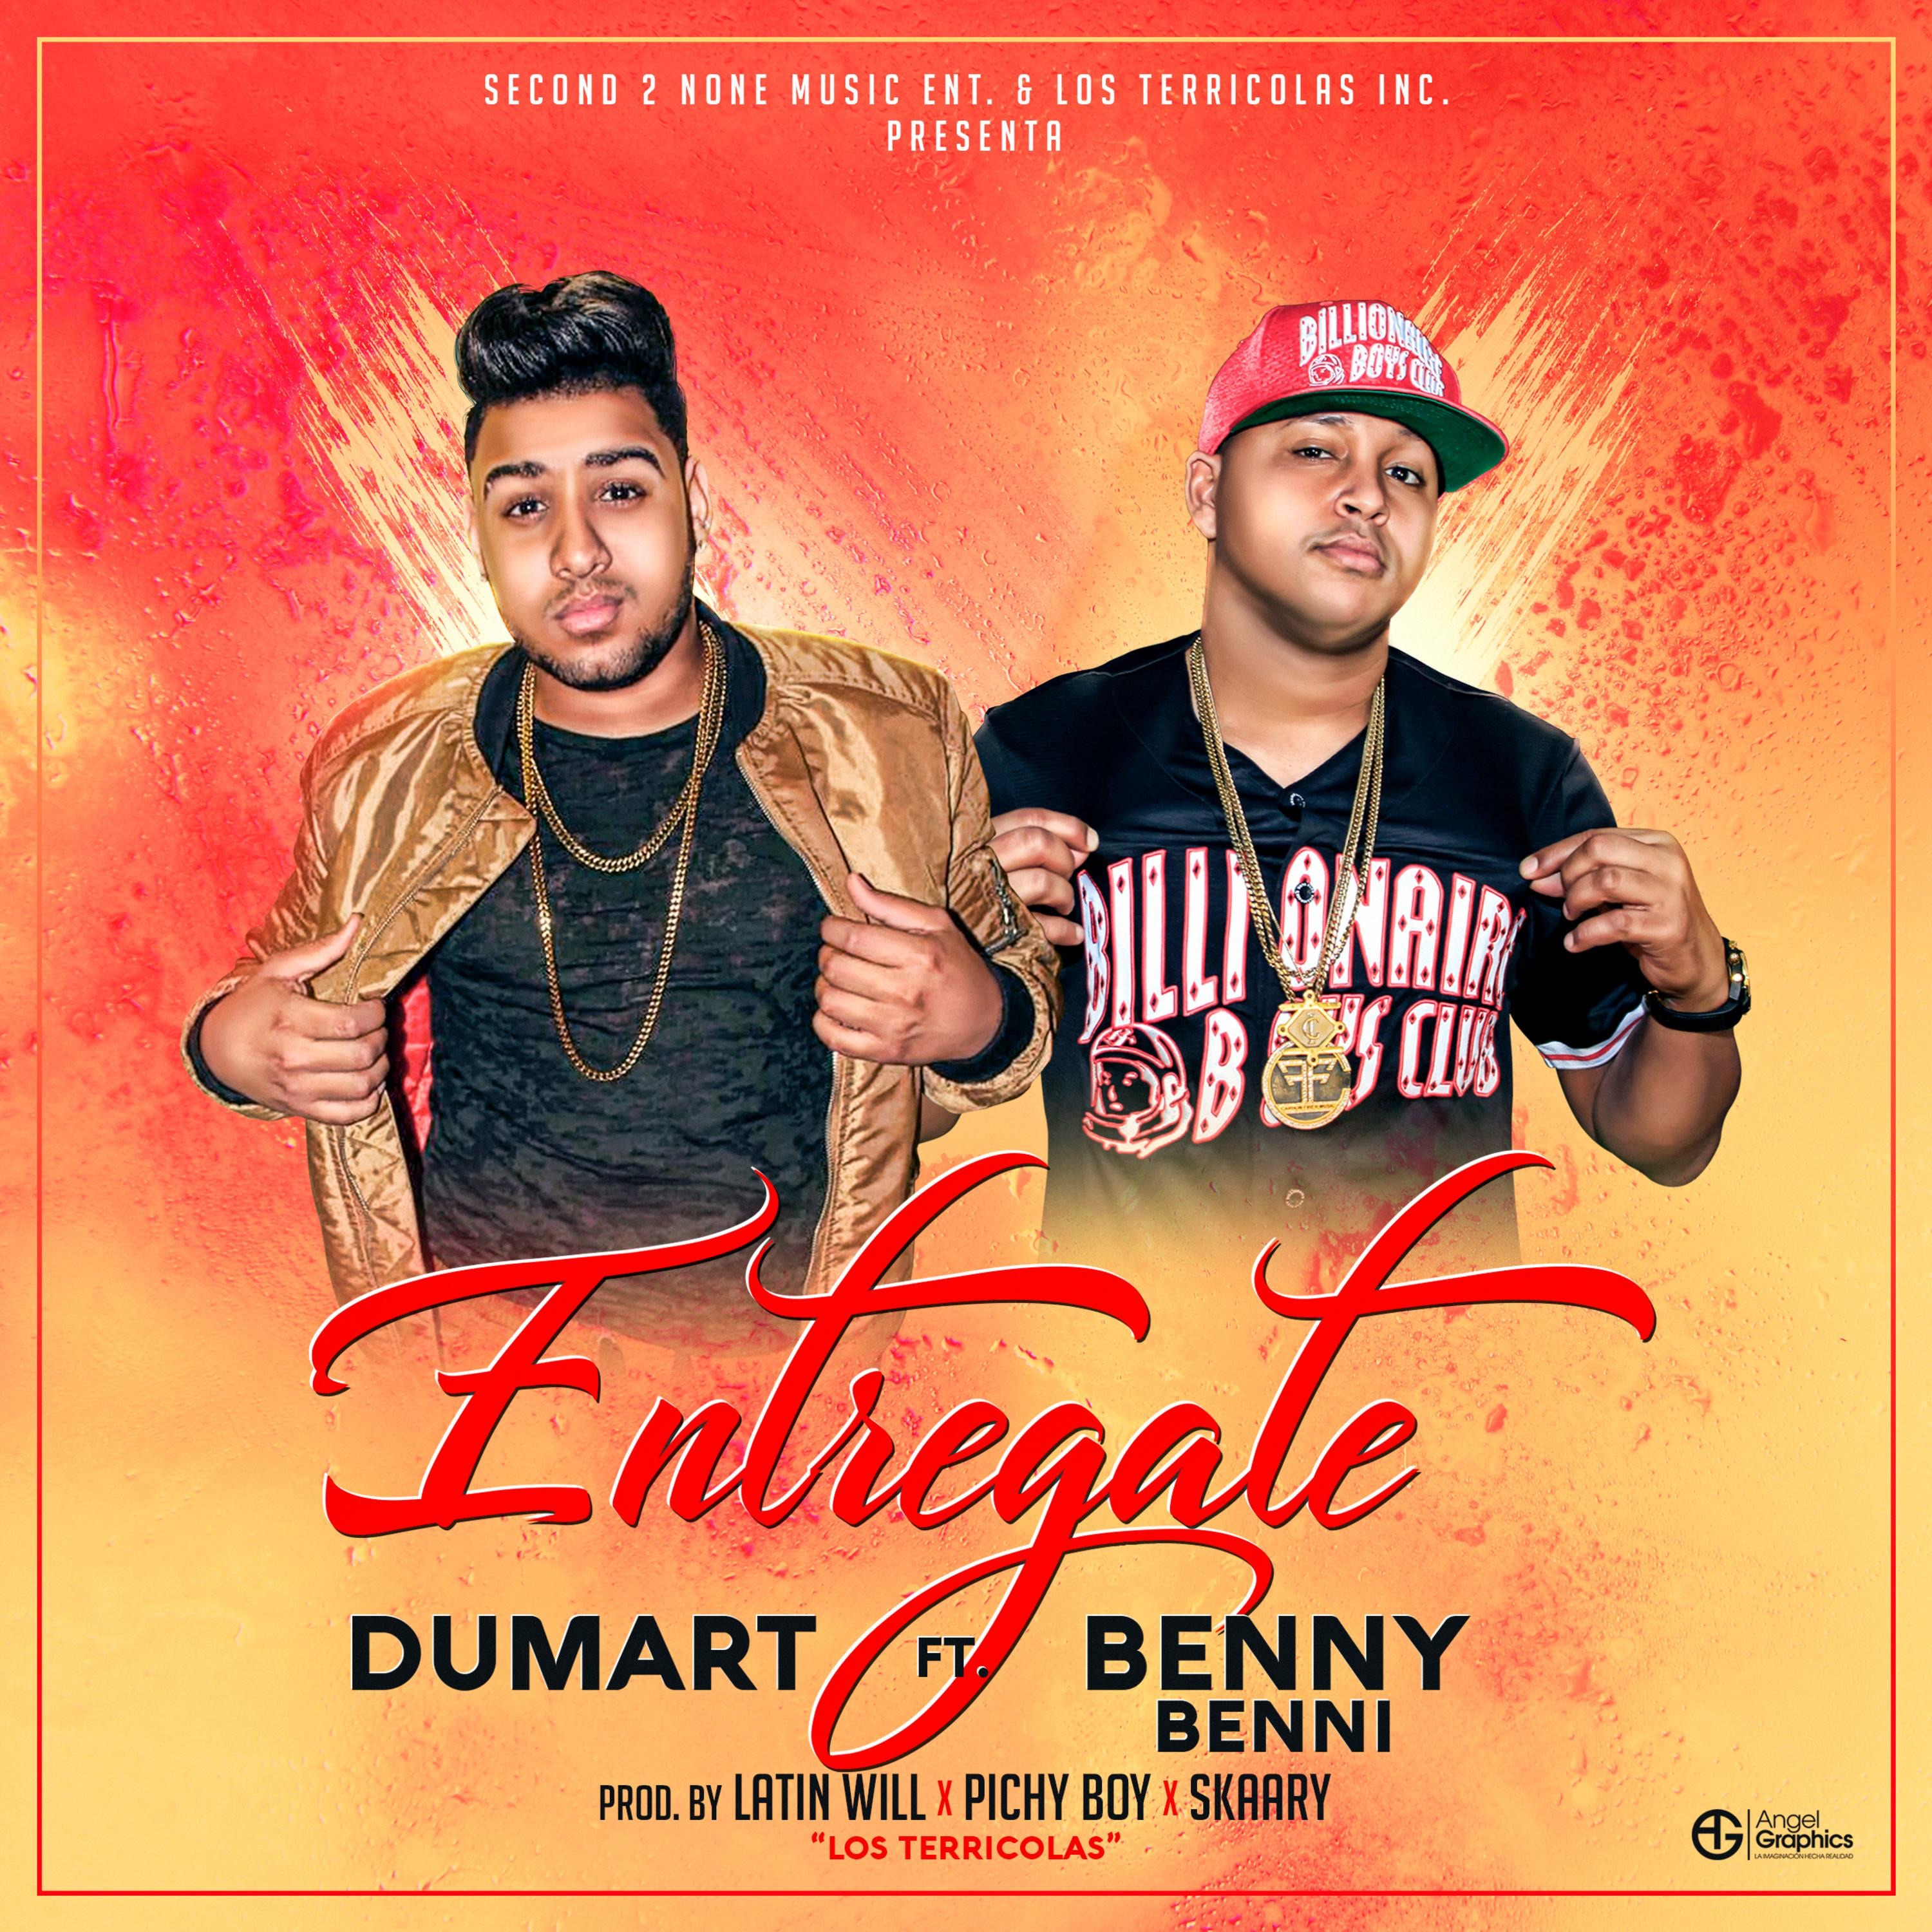 Entregate (feat. Benny Benni) - Single